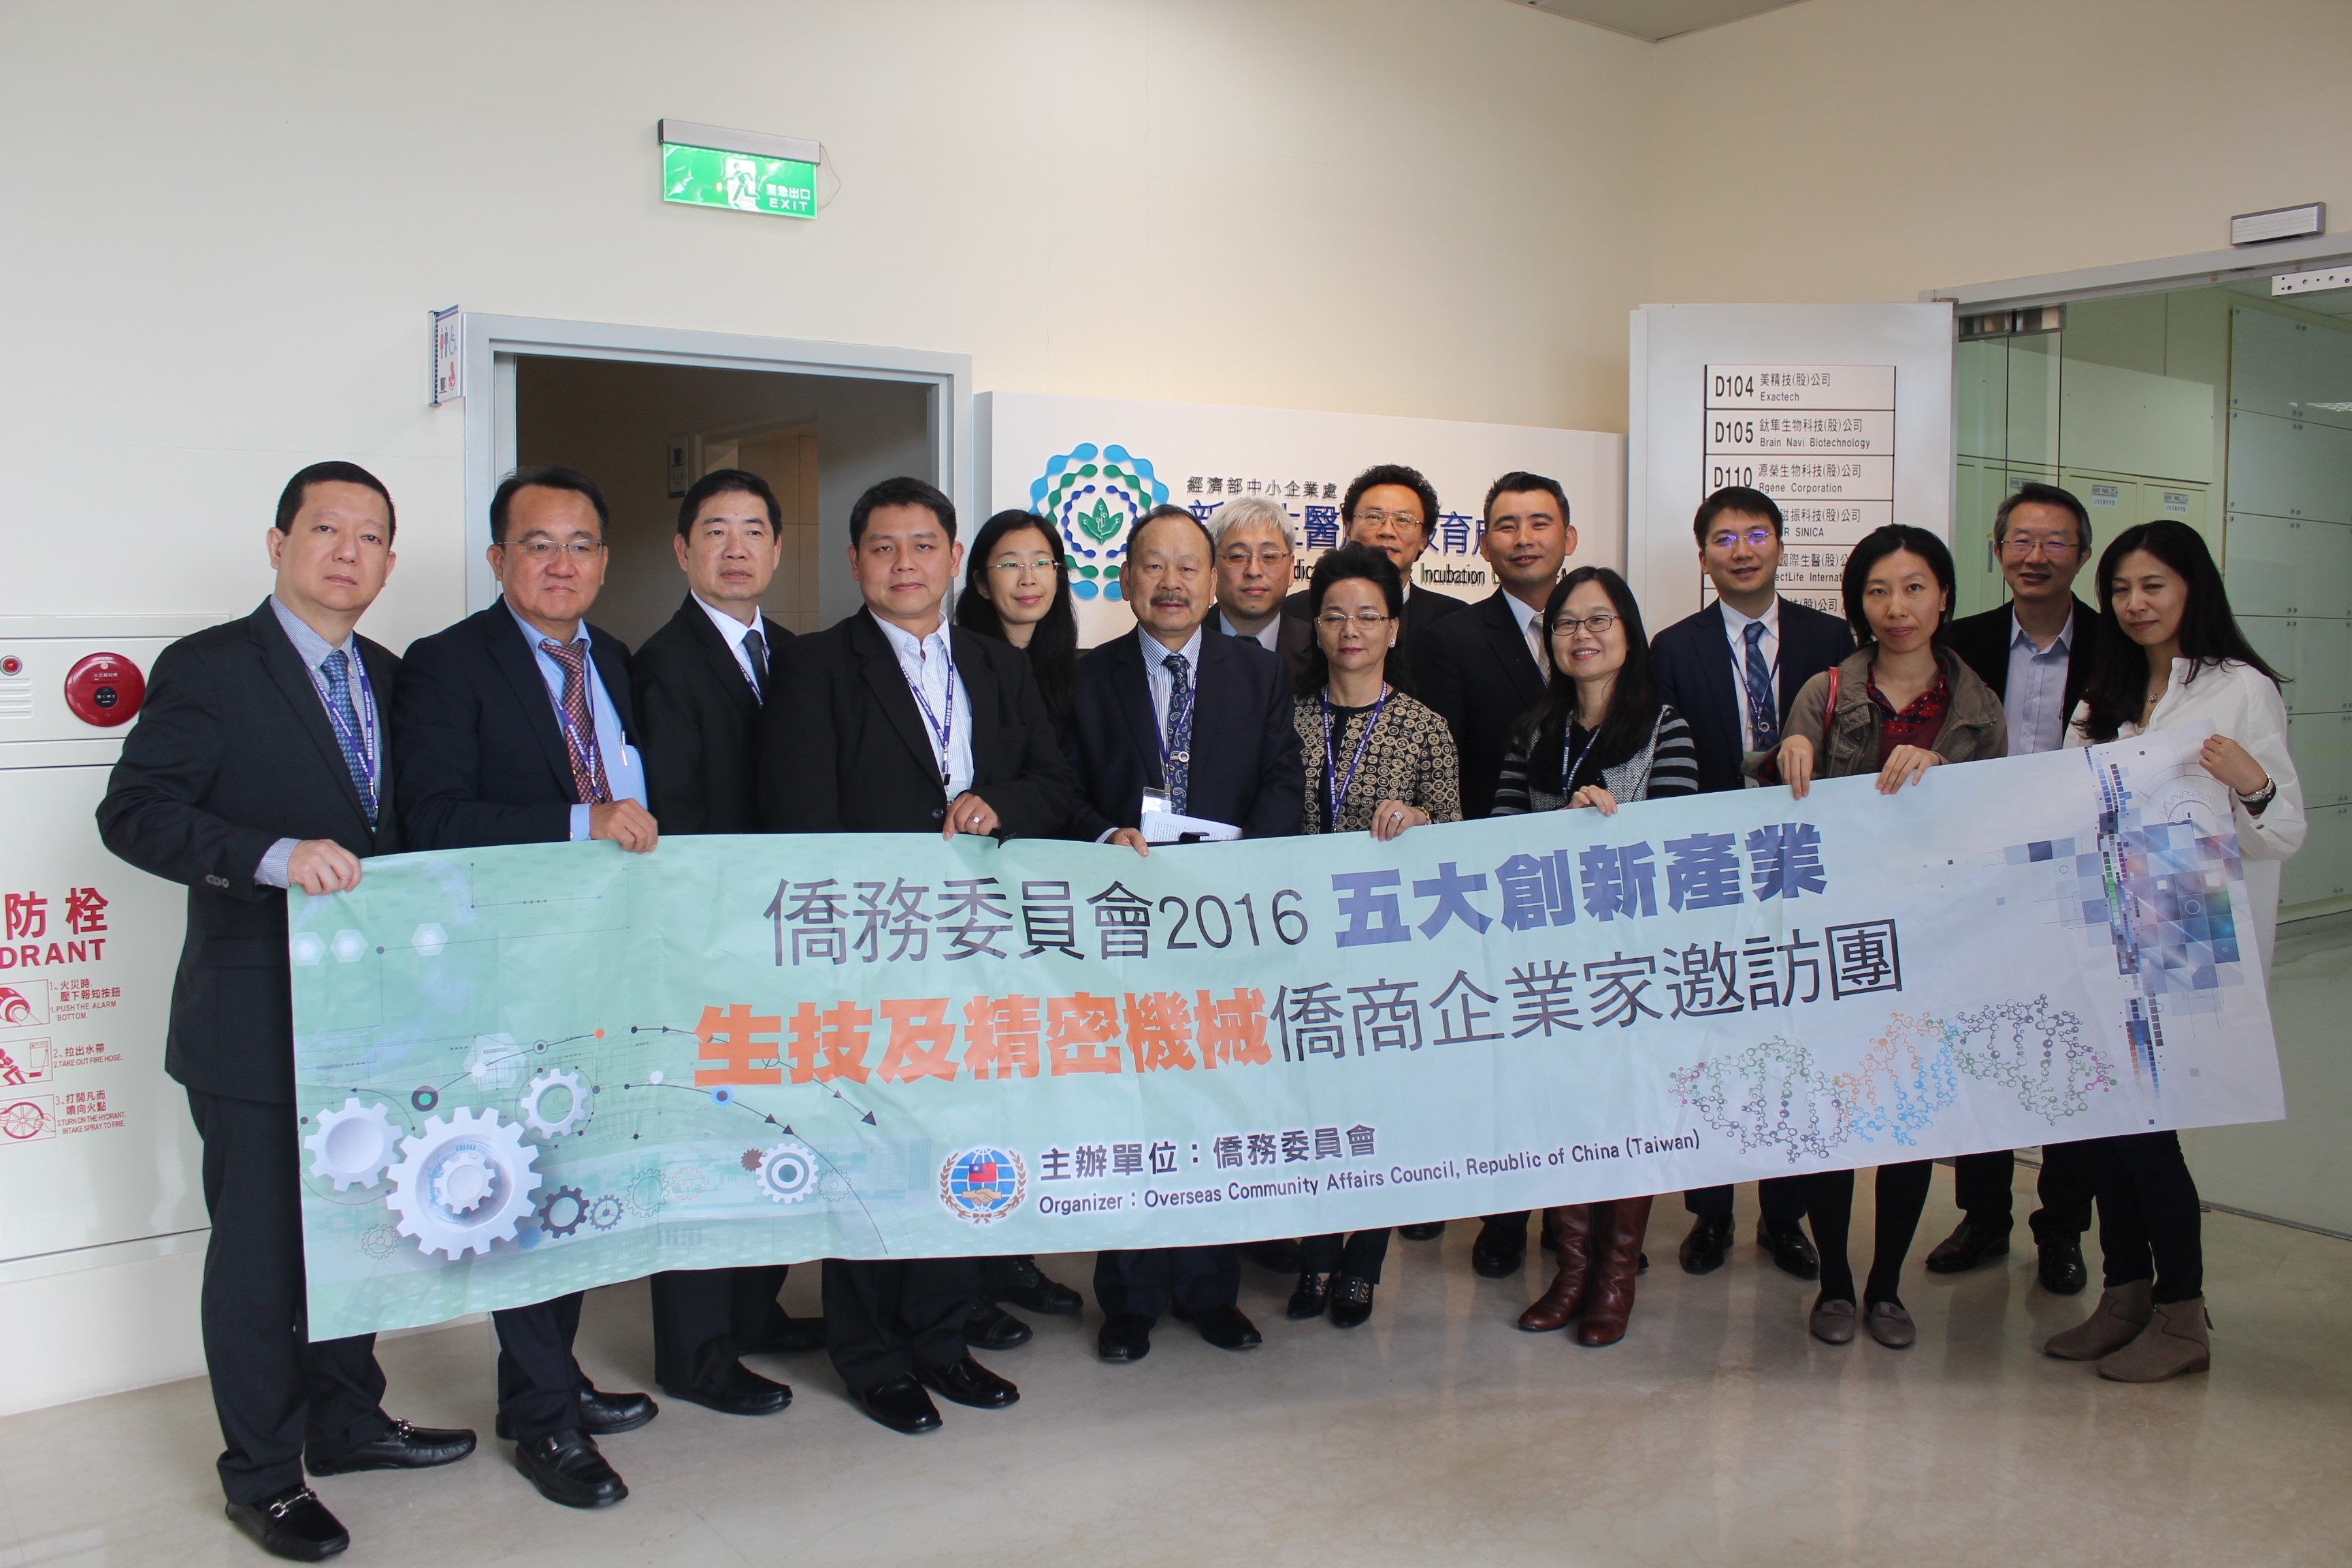 Visit Hsinchu Biomedical Science Park Incubation Center